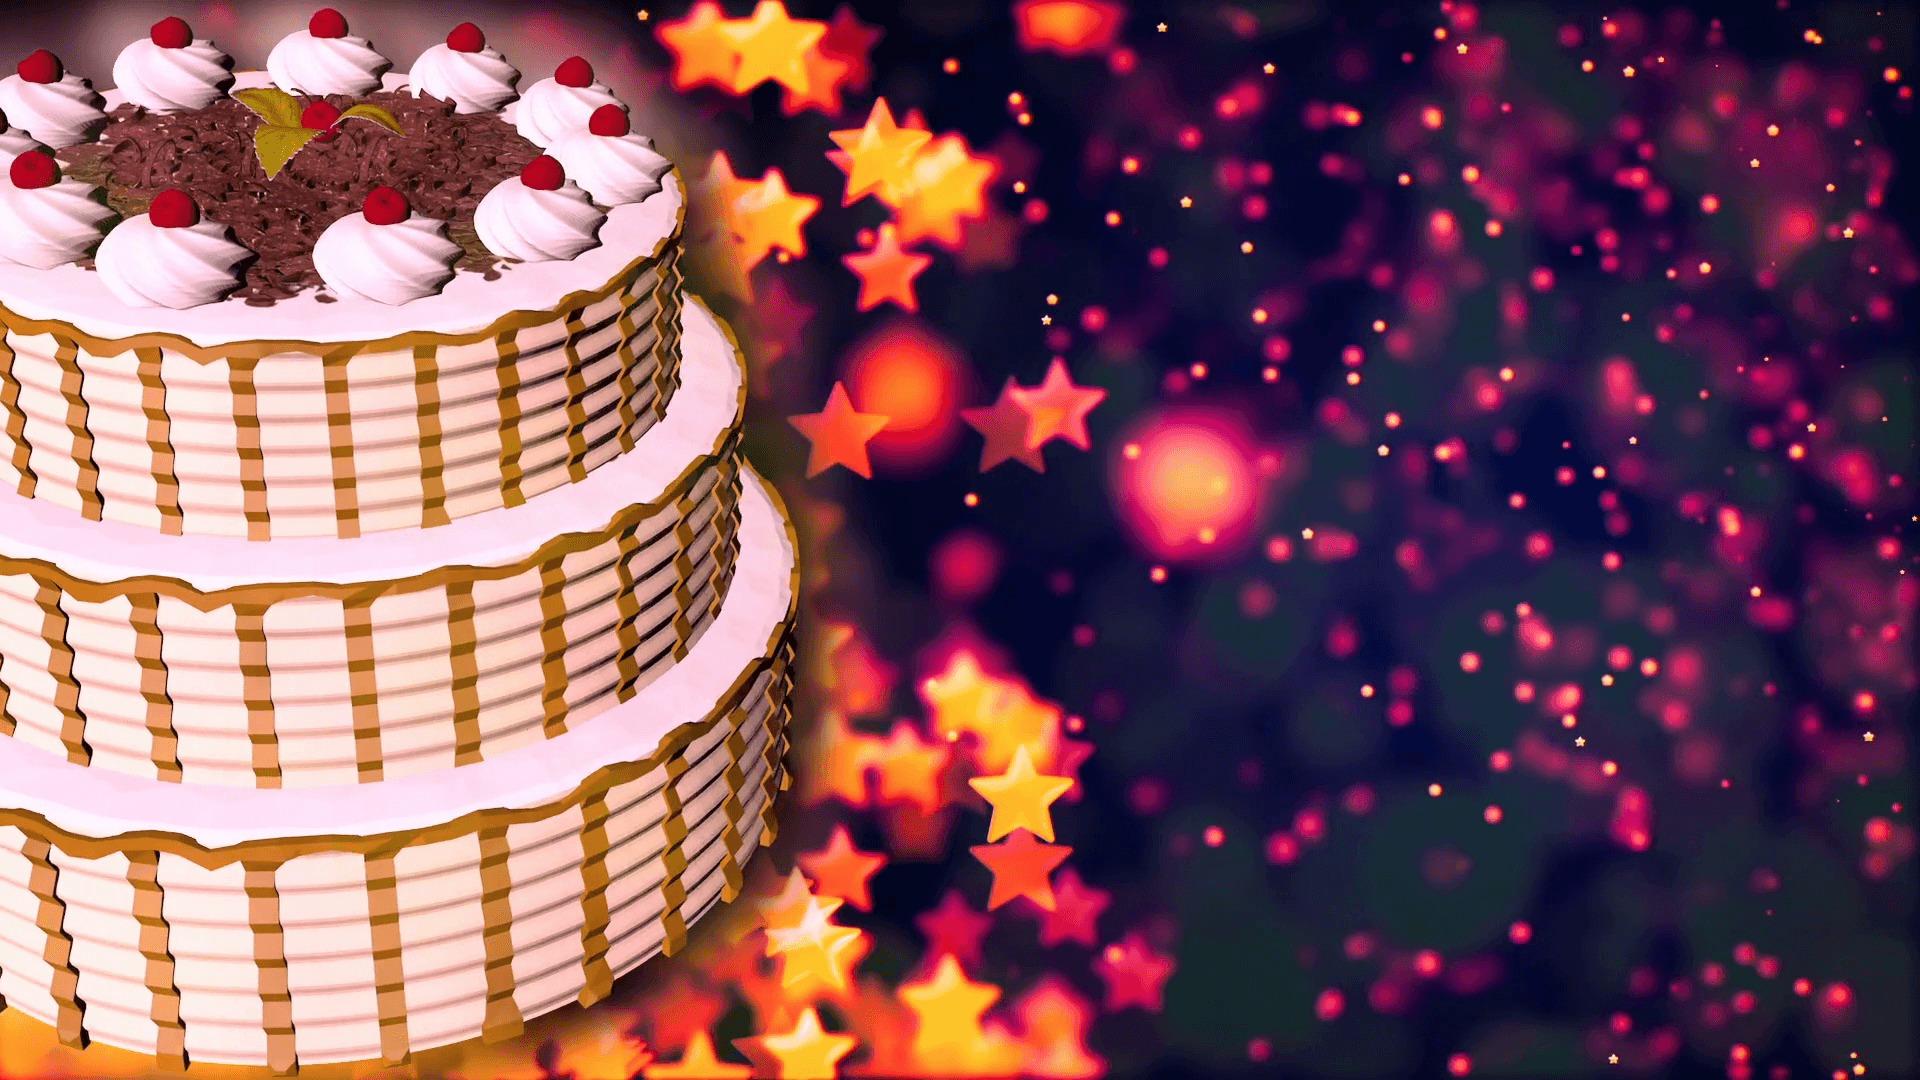 hd birthday backgrounds wallpaper